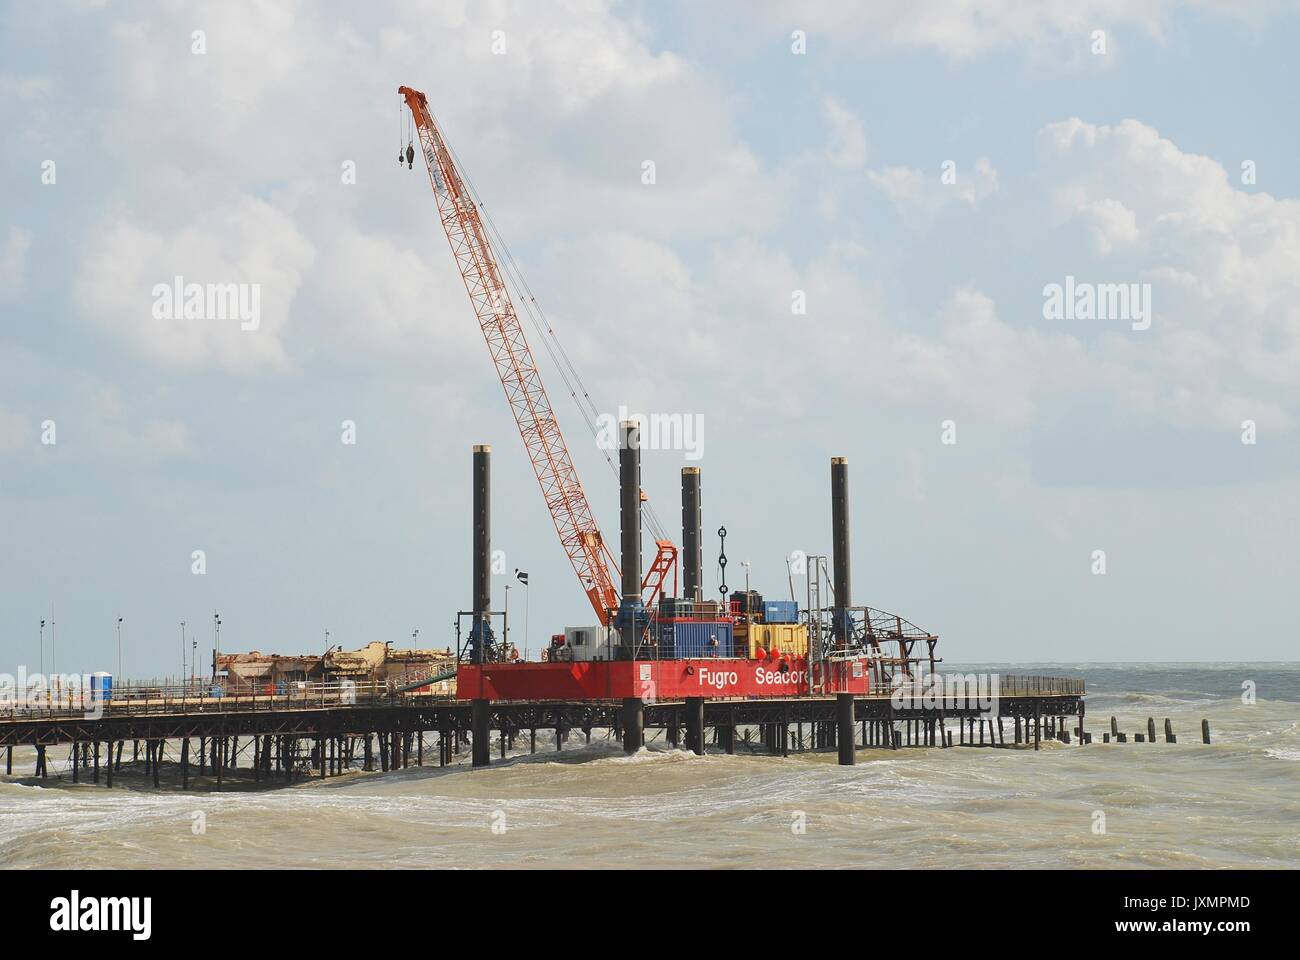 A crane on a jack-up-barge being used to demolish burnt out building remains on the Victorian pier in Hastings, England on November 9, 2014. - Stock Image